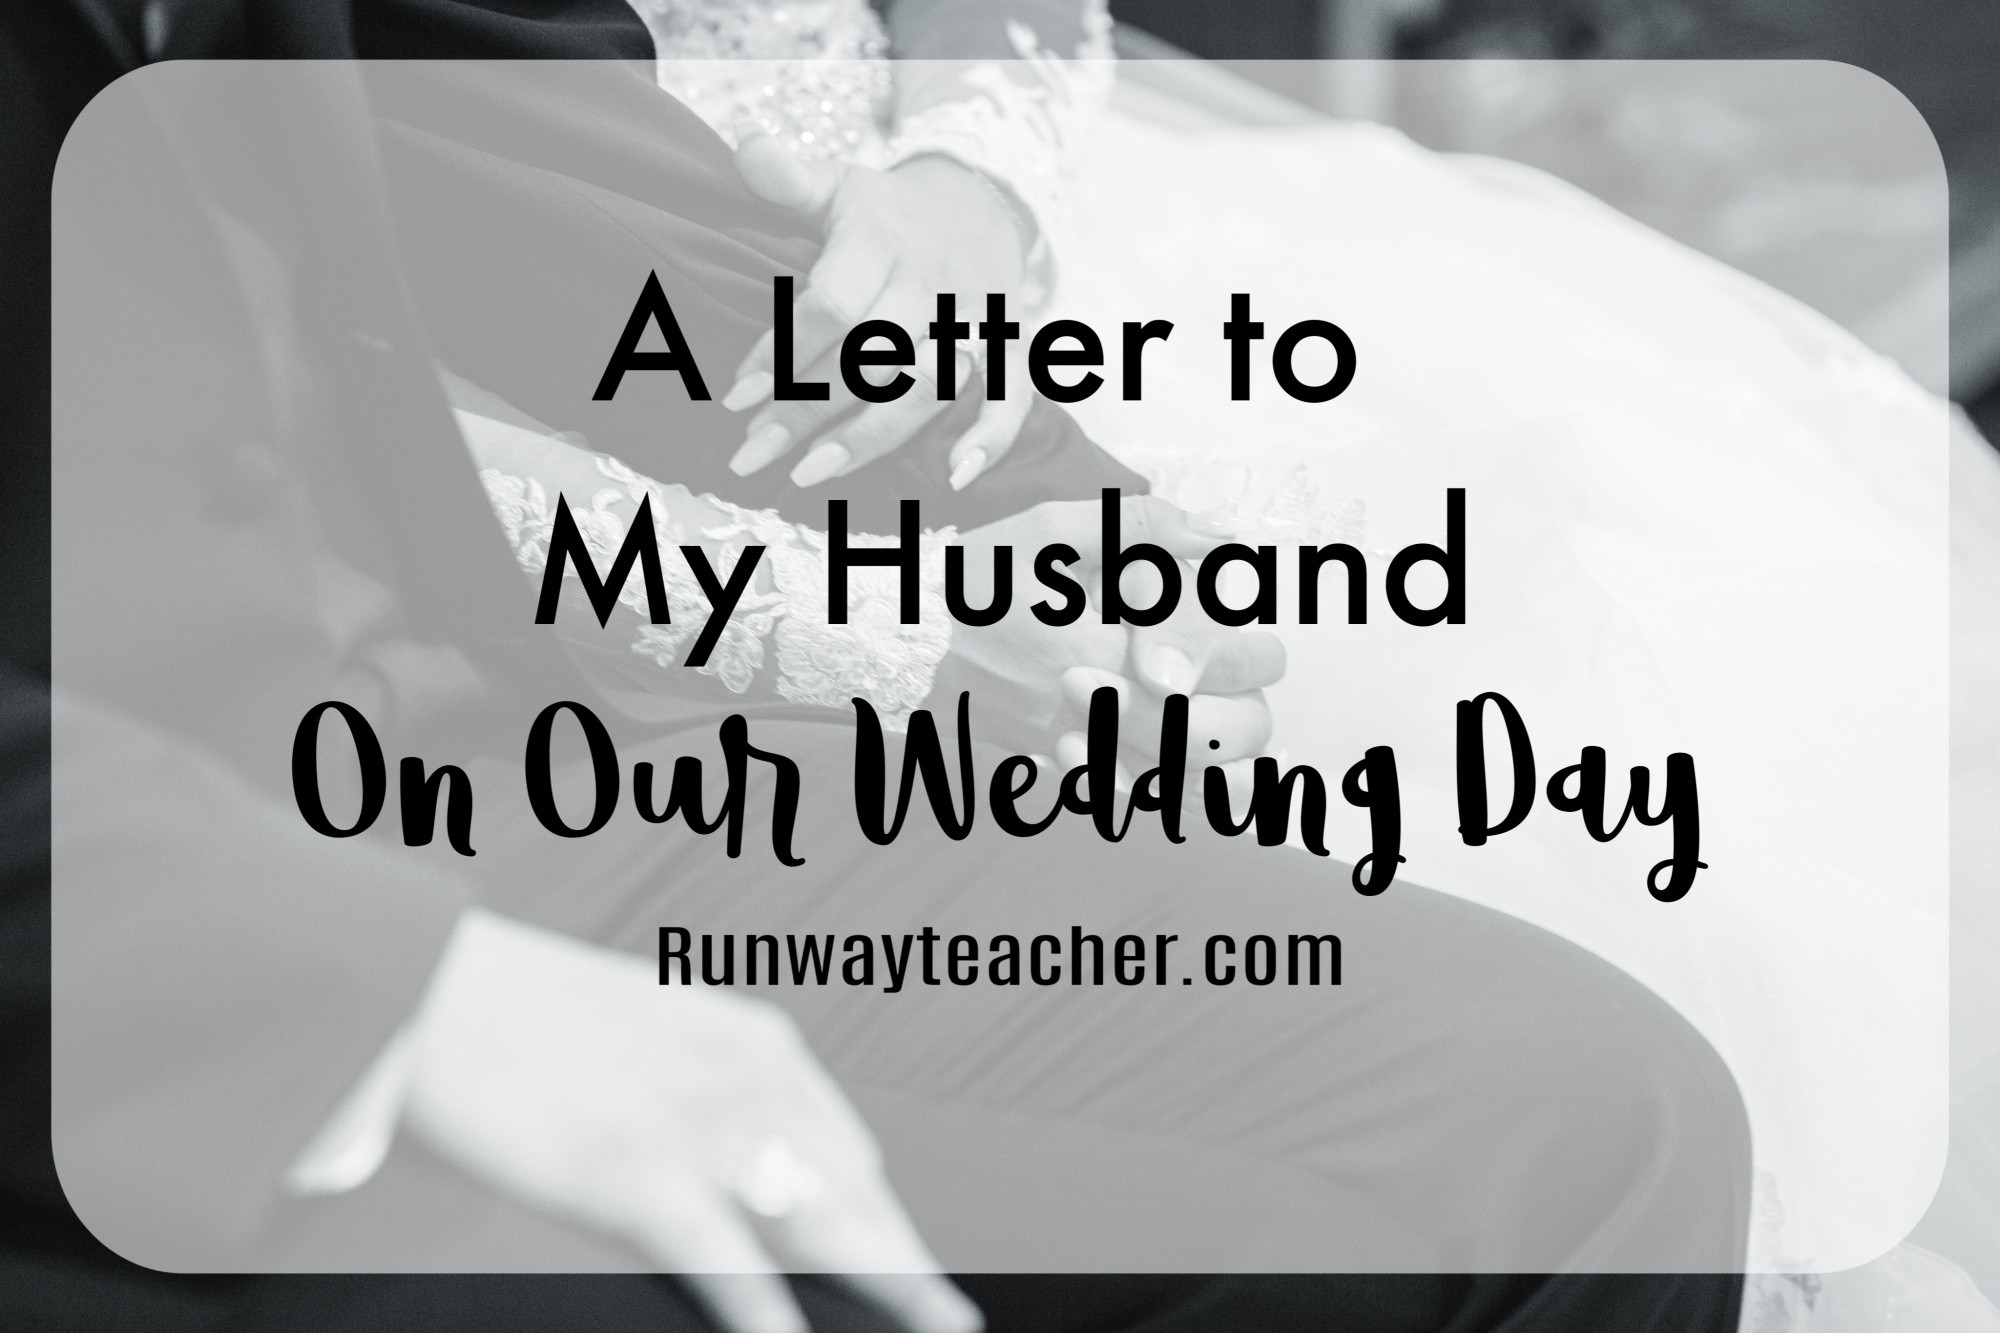 a letter to my fiance on our wedding day a letter to my husband on our wedding day 29614 | letter to my husband on our wedding day